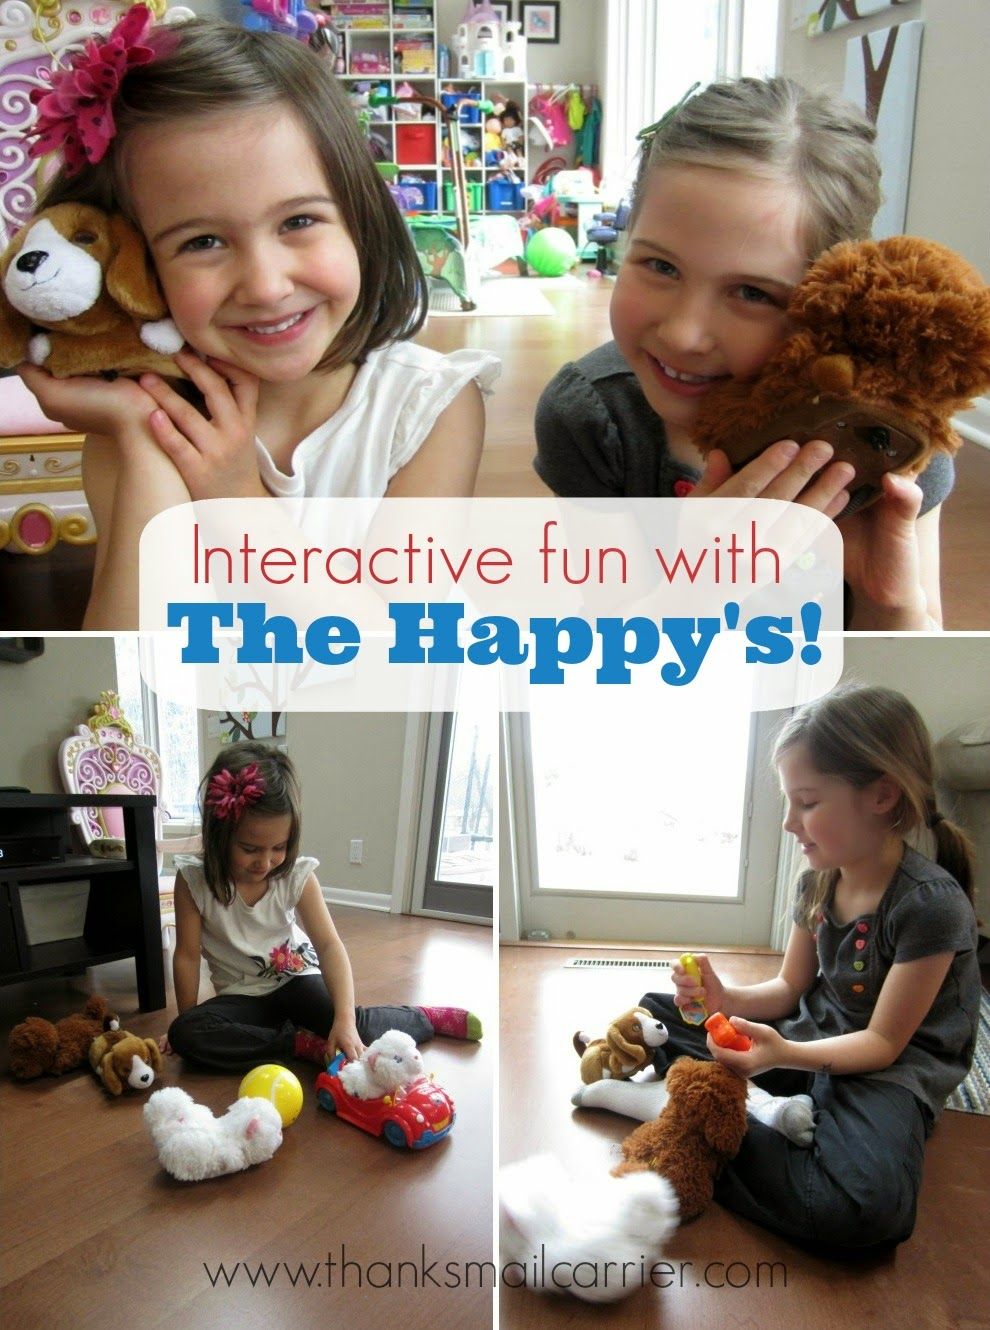 The Happy's pets review